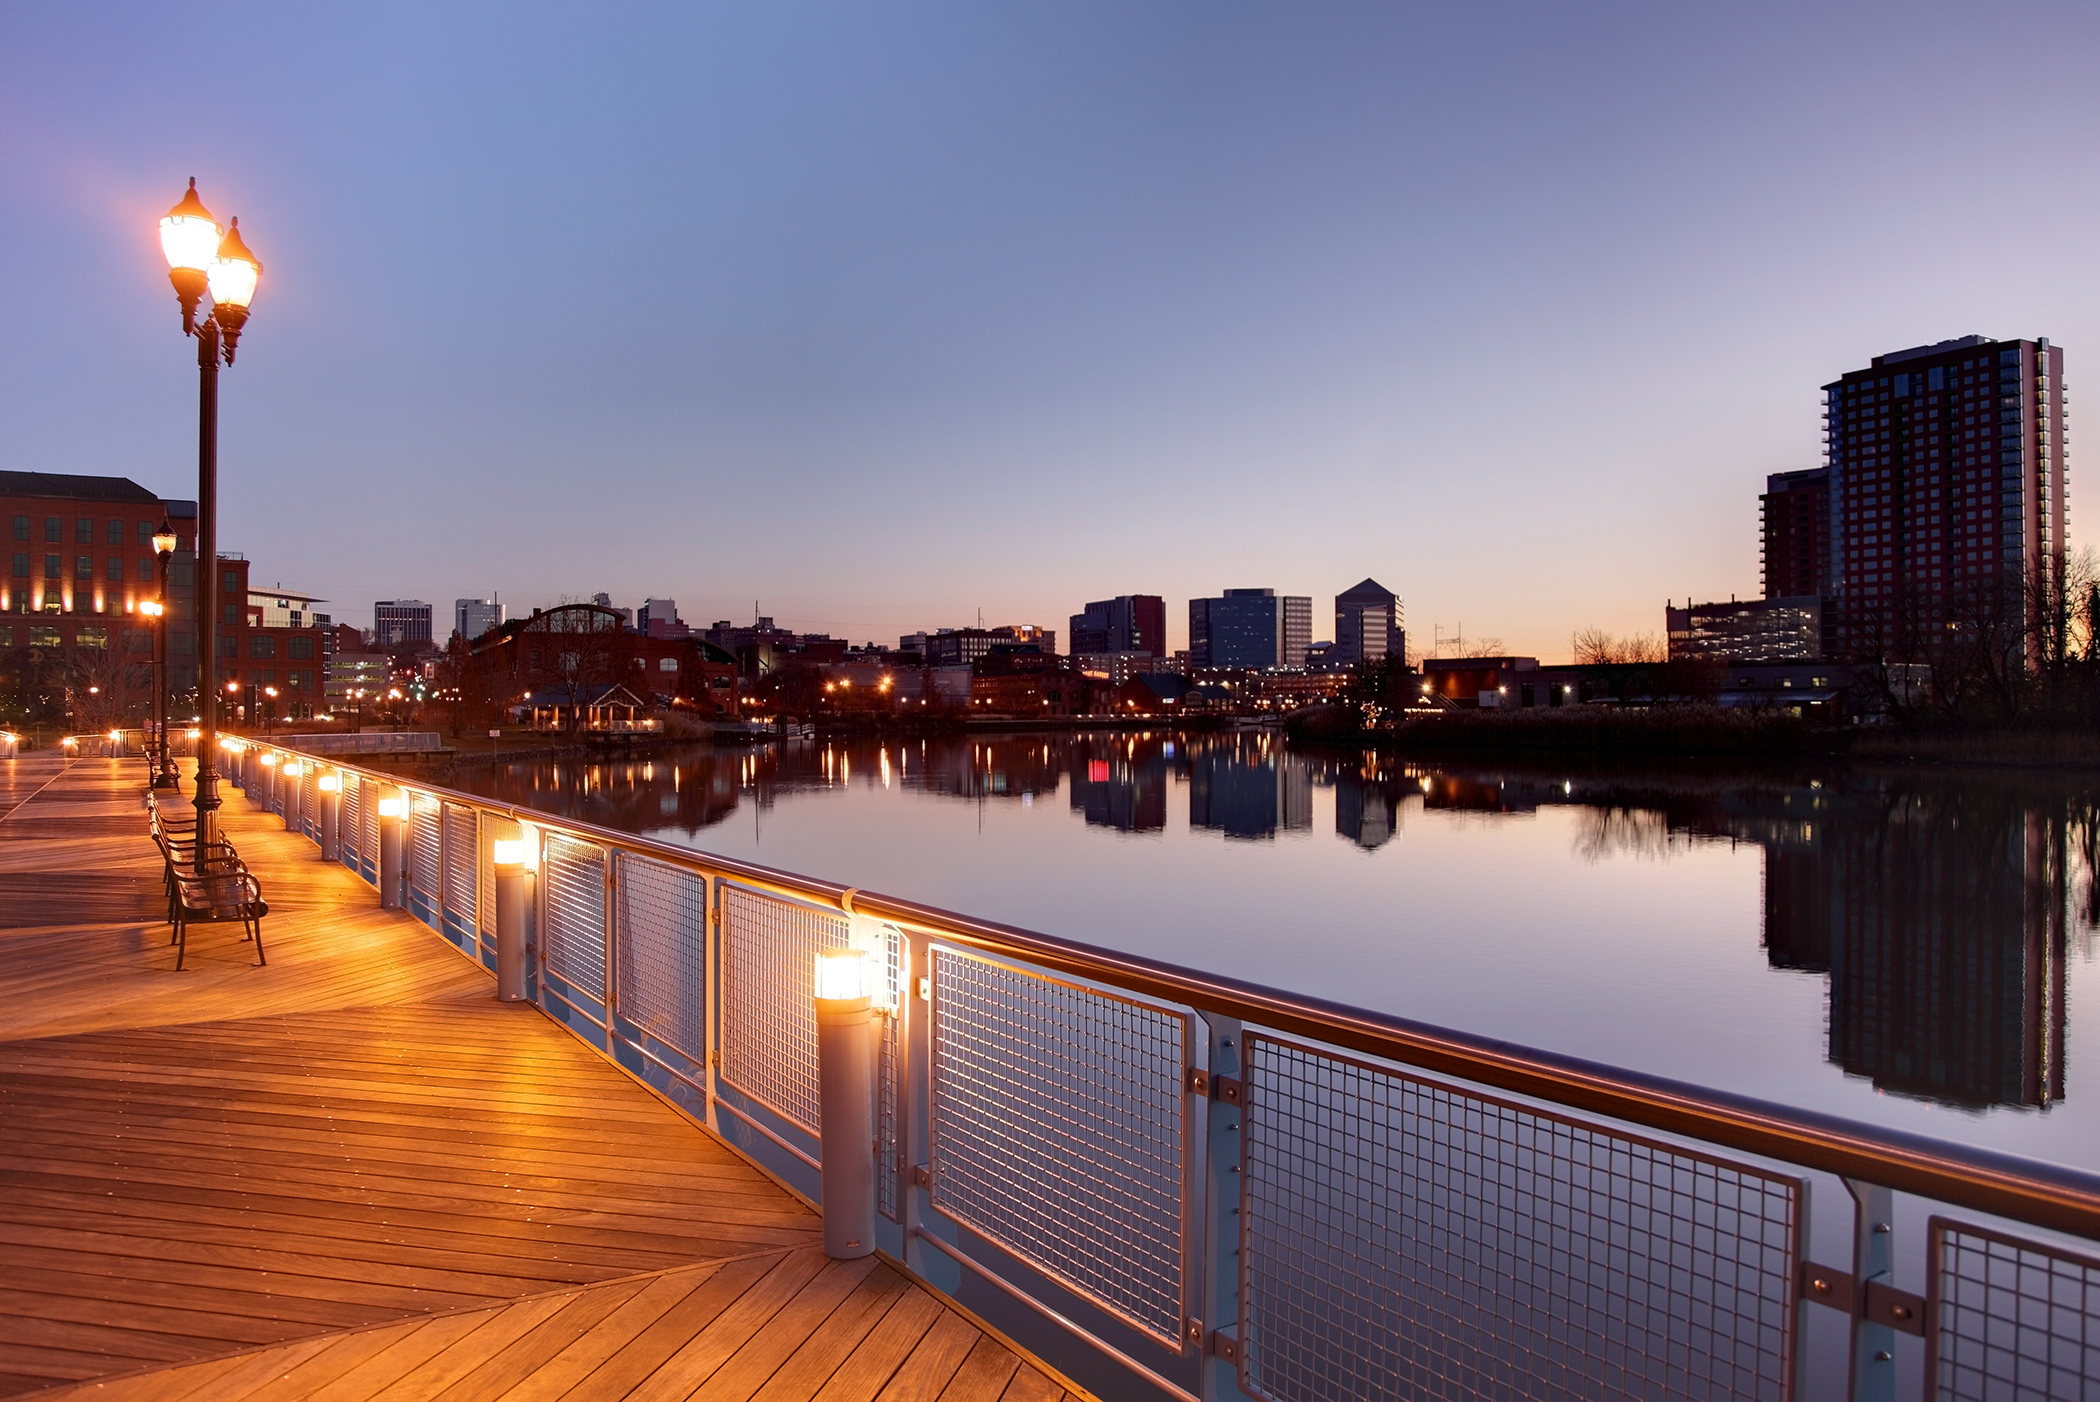 <strong>Wilmington, Delaware. </strong>At the confluence of the Christina and Brandywine rivers, Wilmington has been undergoing a waterfront revival.